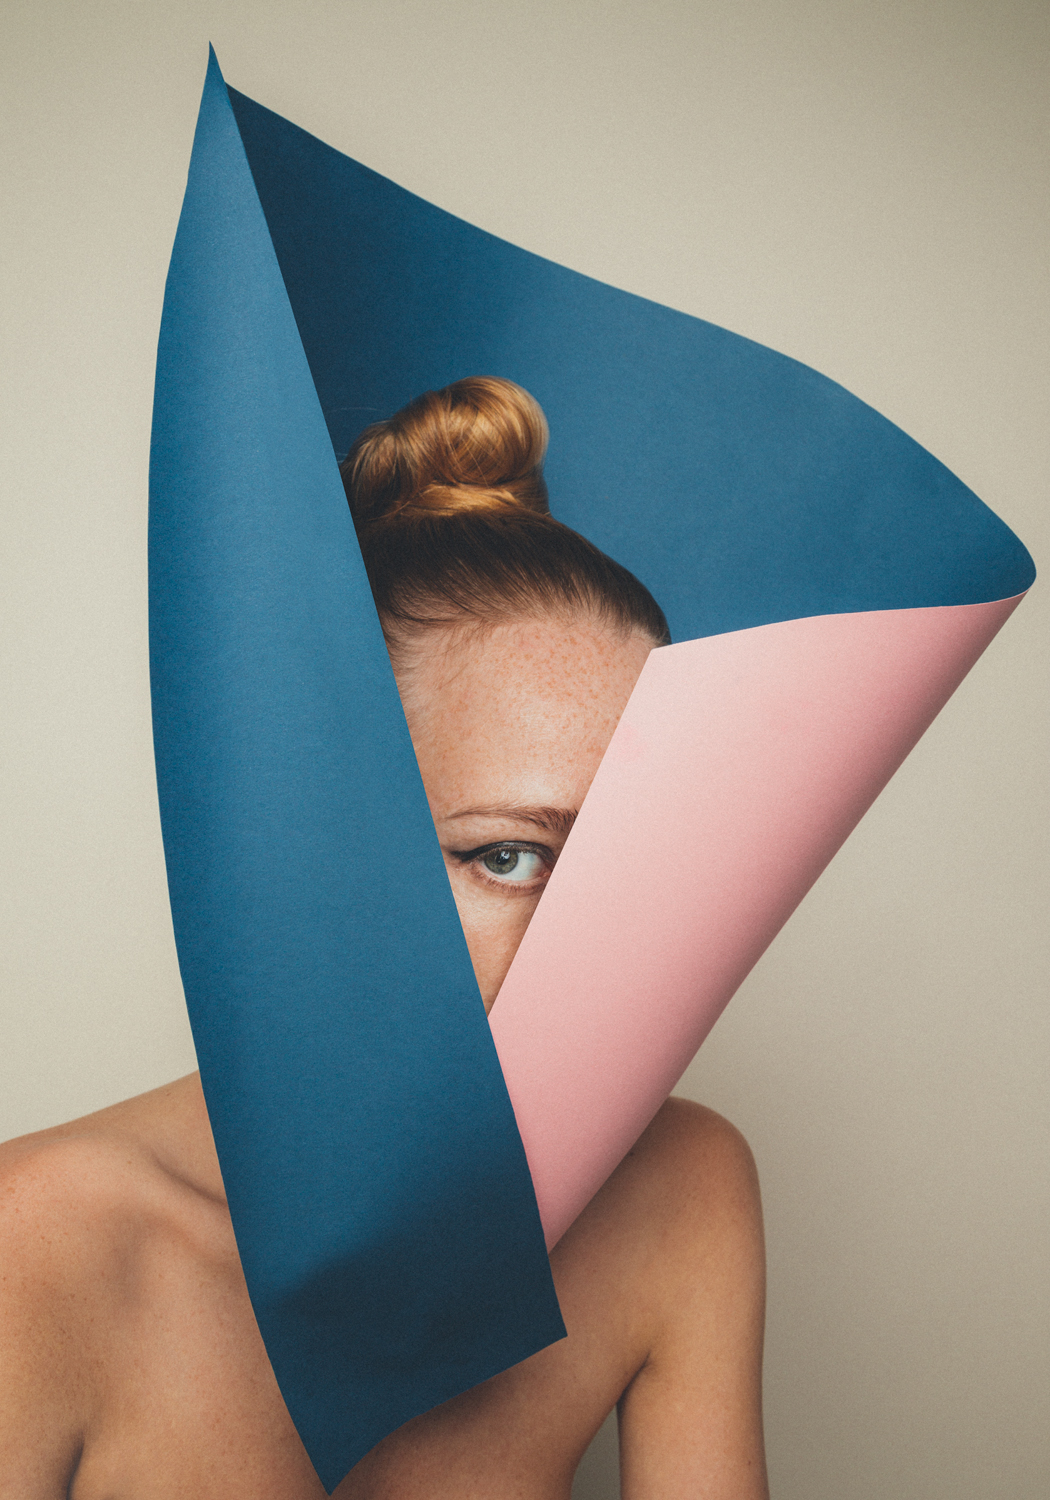 Kristoffer Marchi Creates Playful Portraits in Minimal Paper